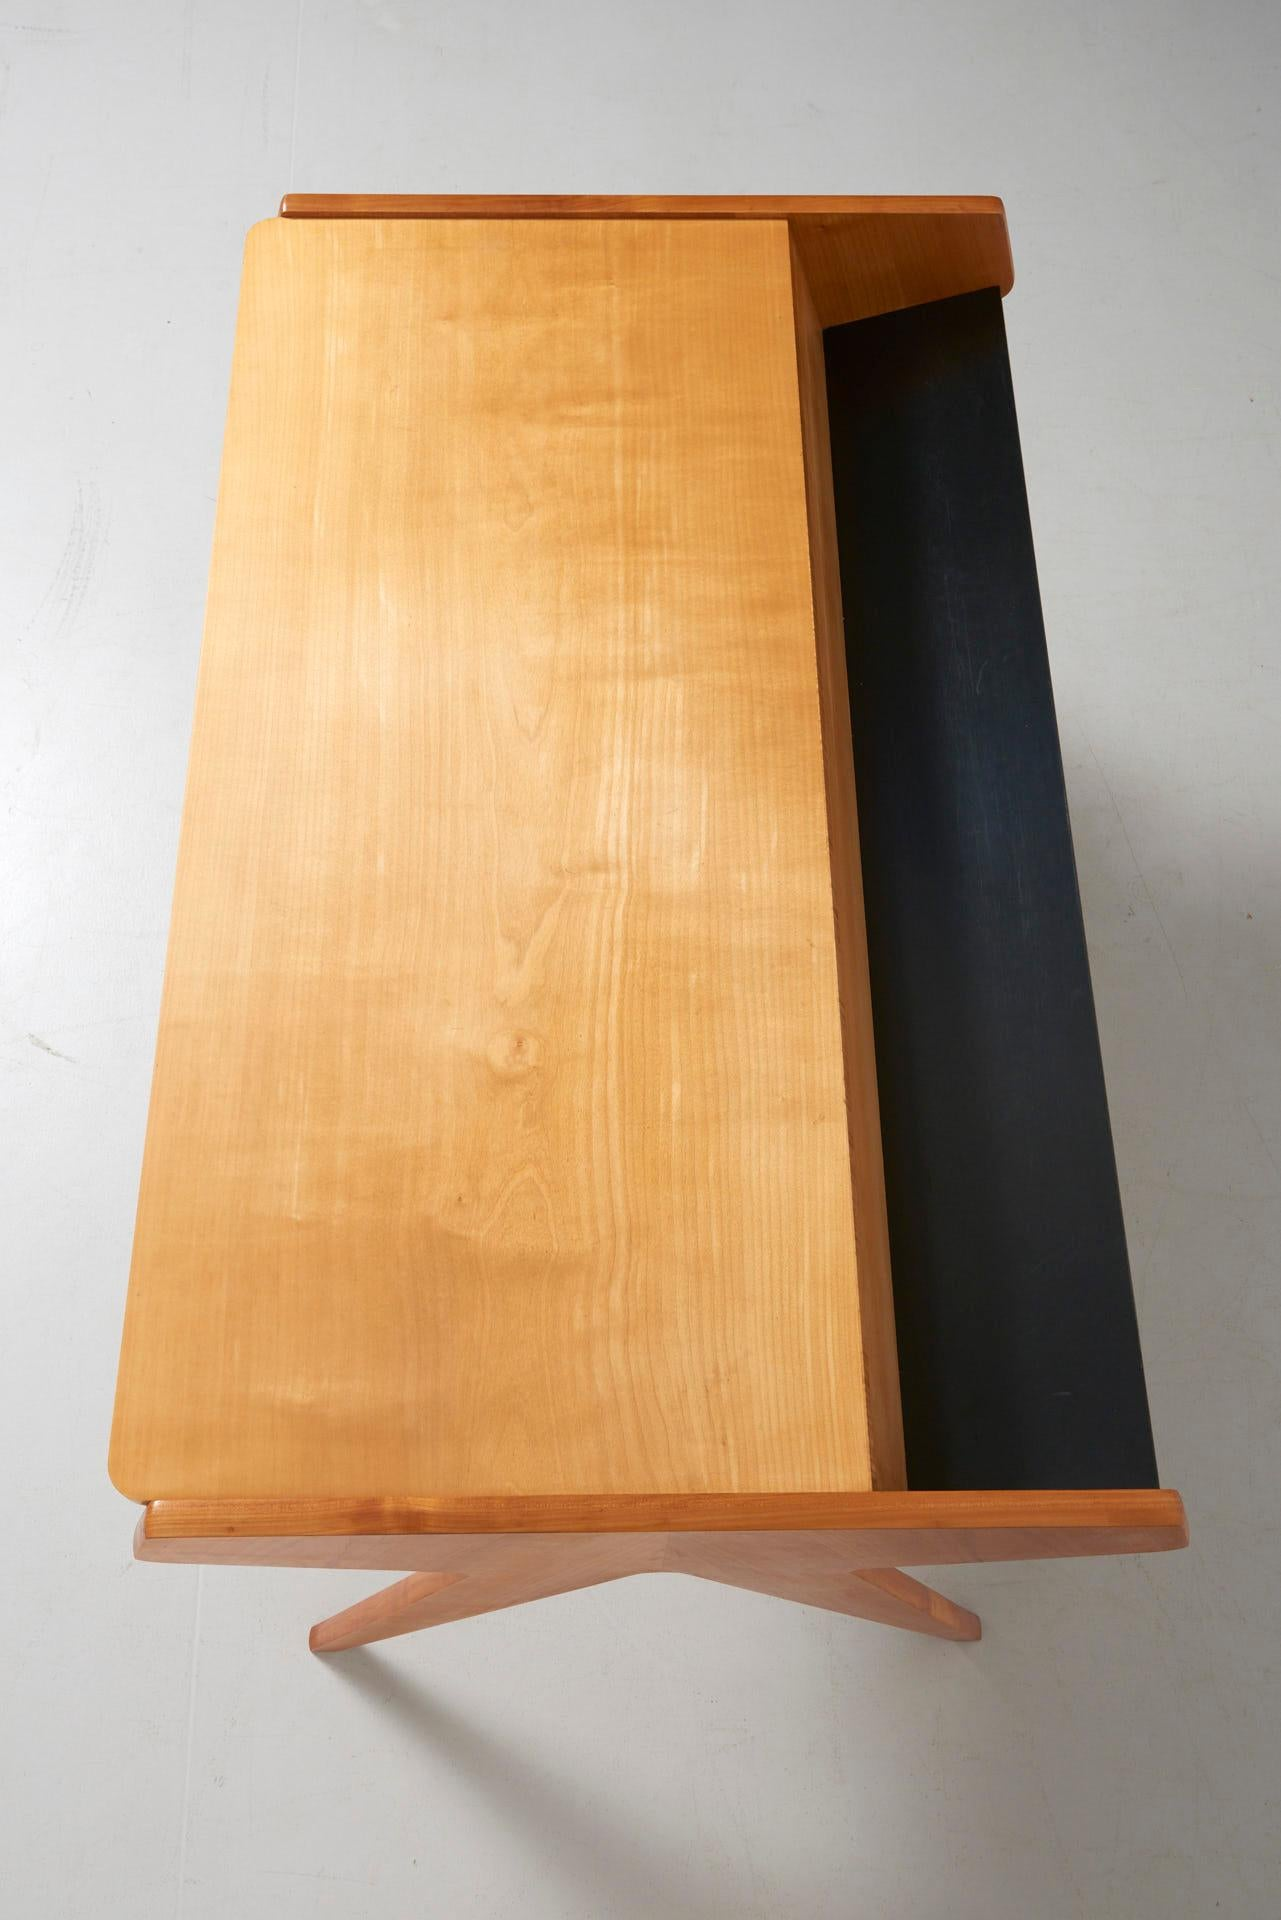 Möbel Yellow Desk In Ash With 2 Black Drawers By Helmut Magg For Wk Möbel 1955